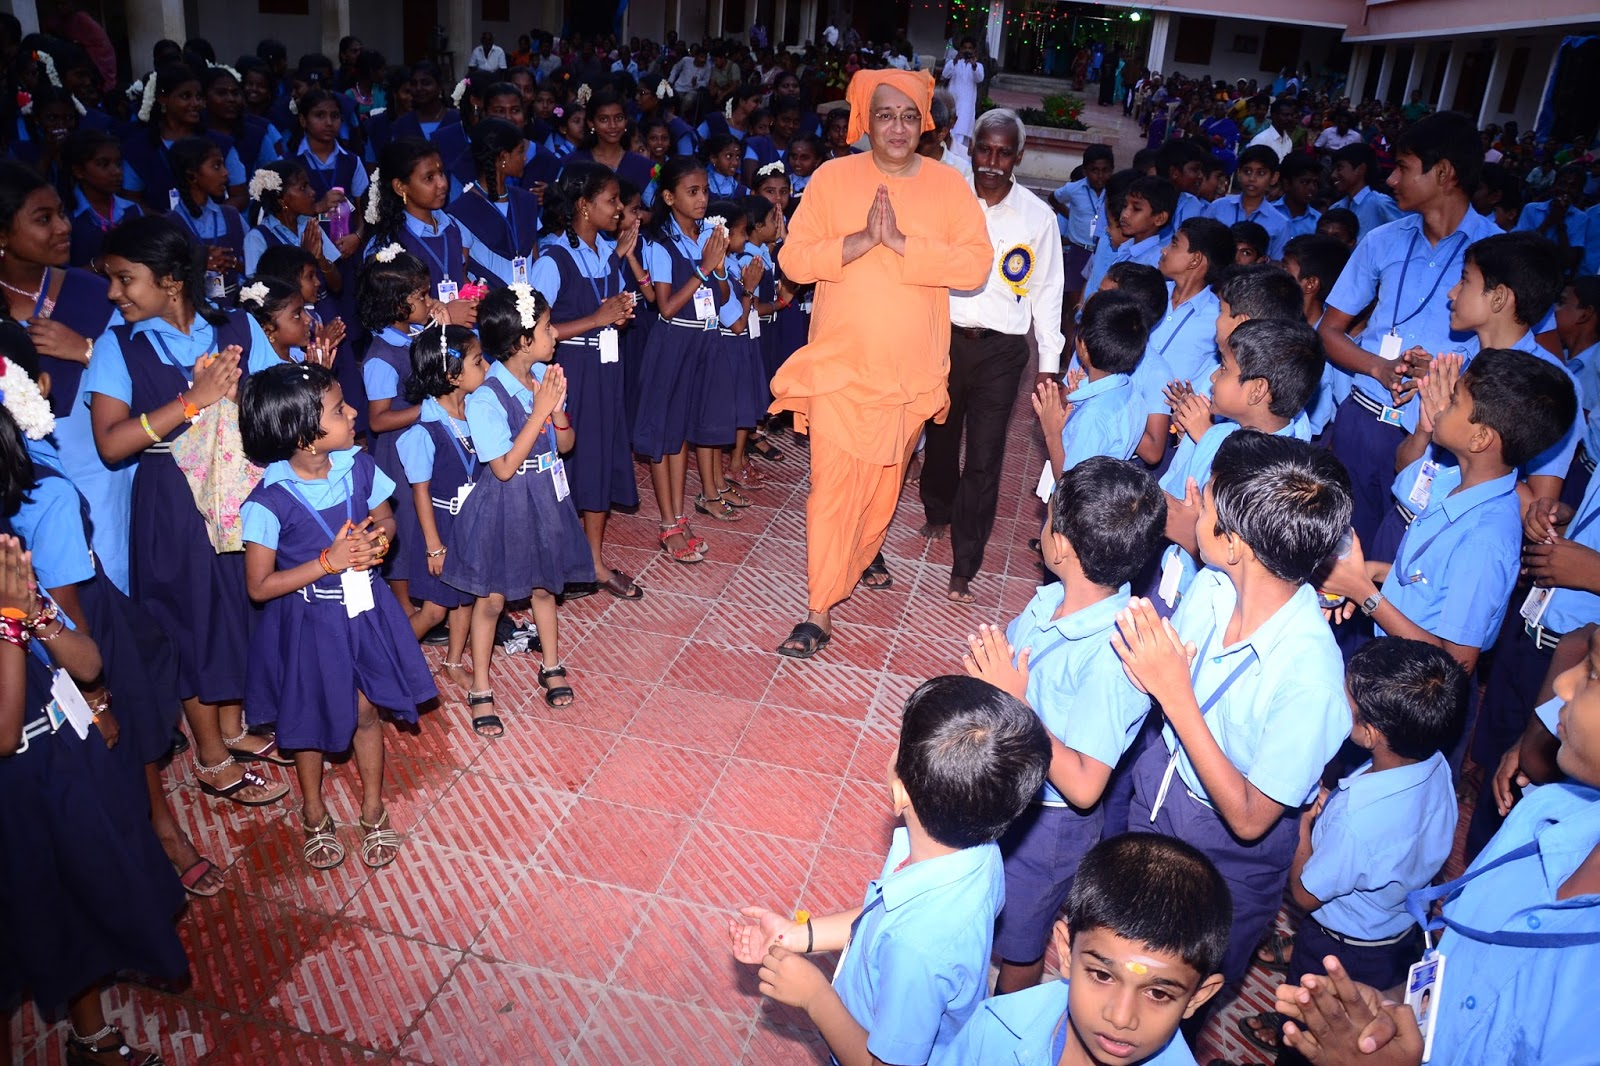 vivekananda kendra vidyalaya kanyakumari universal brotherhood as per that universal brotherhood day was celebrated in our school on 11th 2015 the program started in the evening of 11th